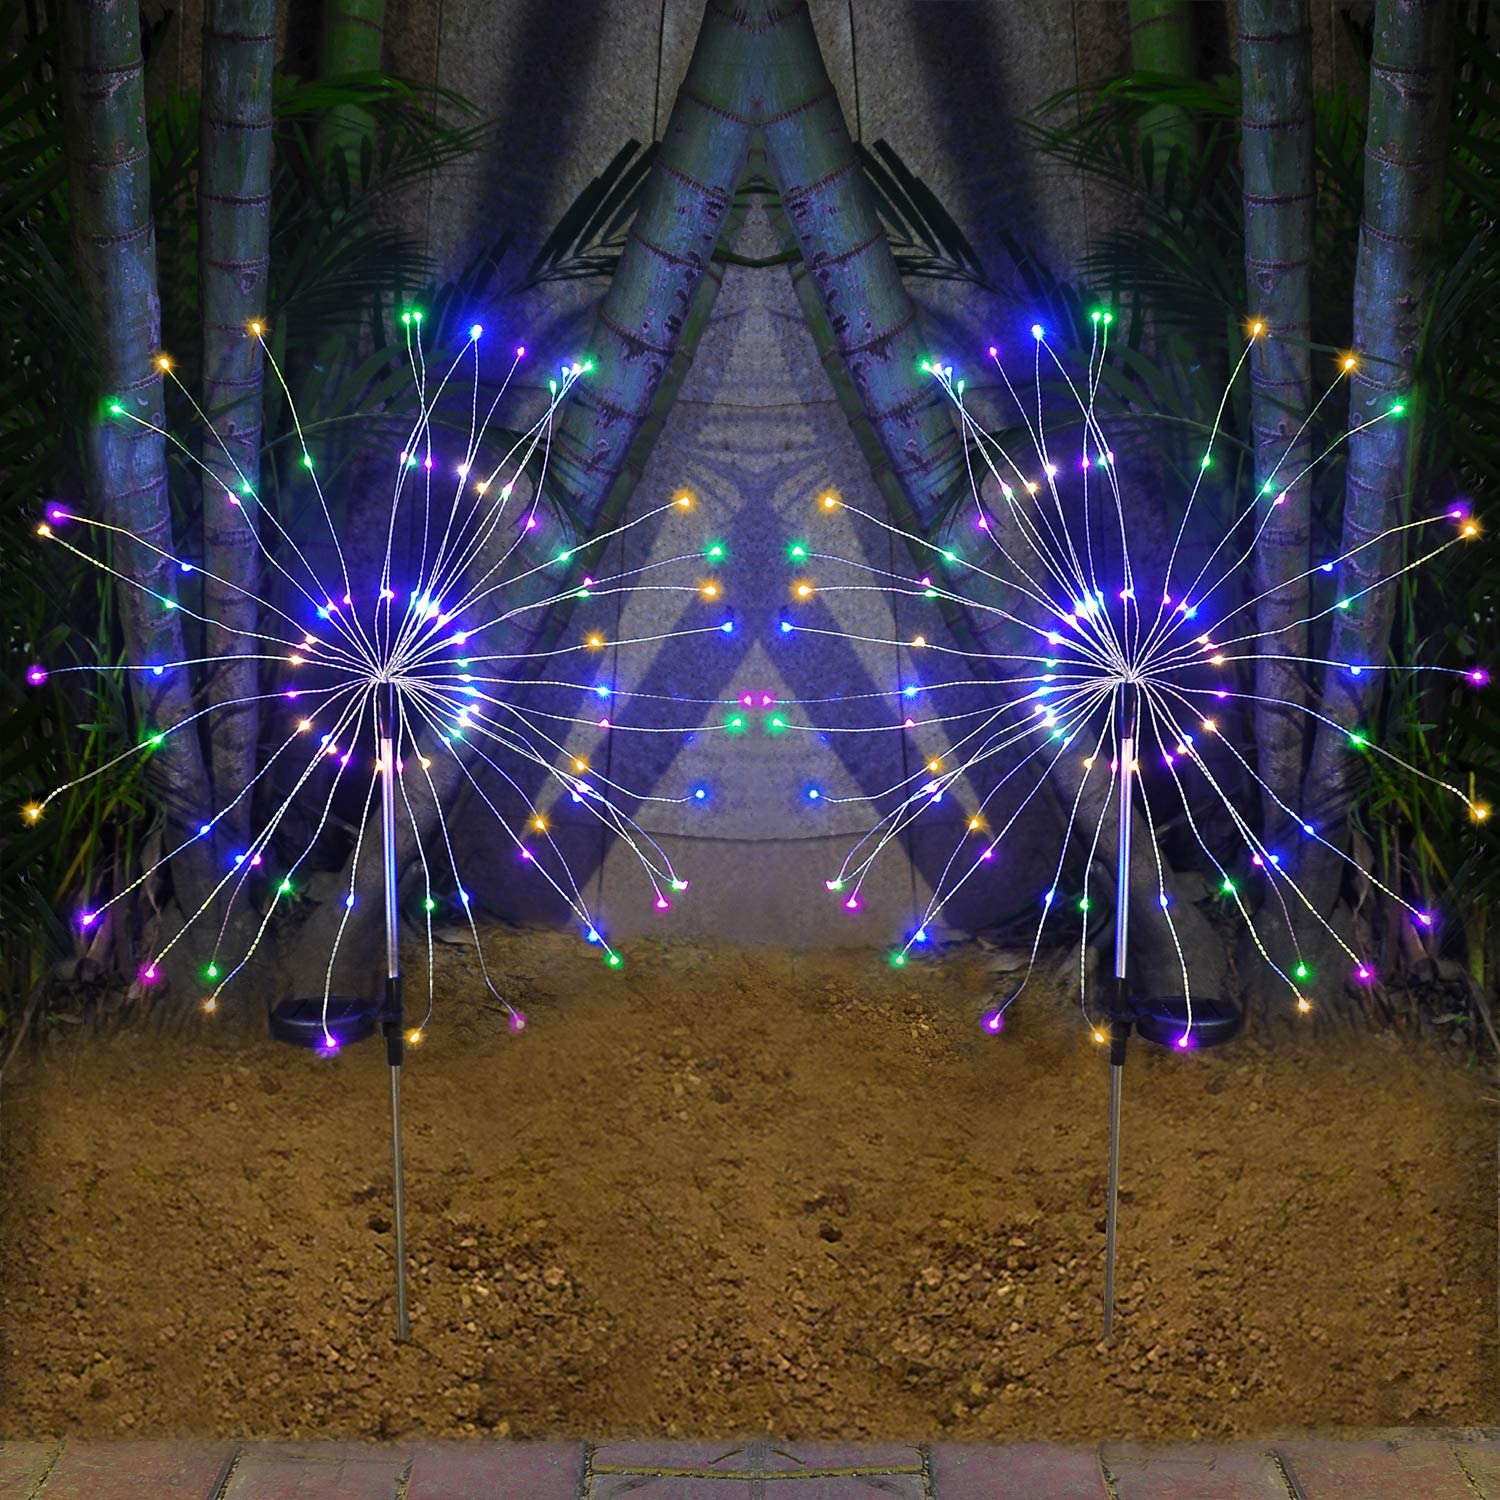 Solar Lights Outdoor - 2 Pack Solar Garden Decorative Lights with 105 LED Powered 35 Copper Wires Fireworks Lights for Walkway Patio Lawn Backyard Christmas(Multi-Color)